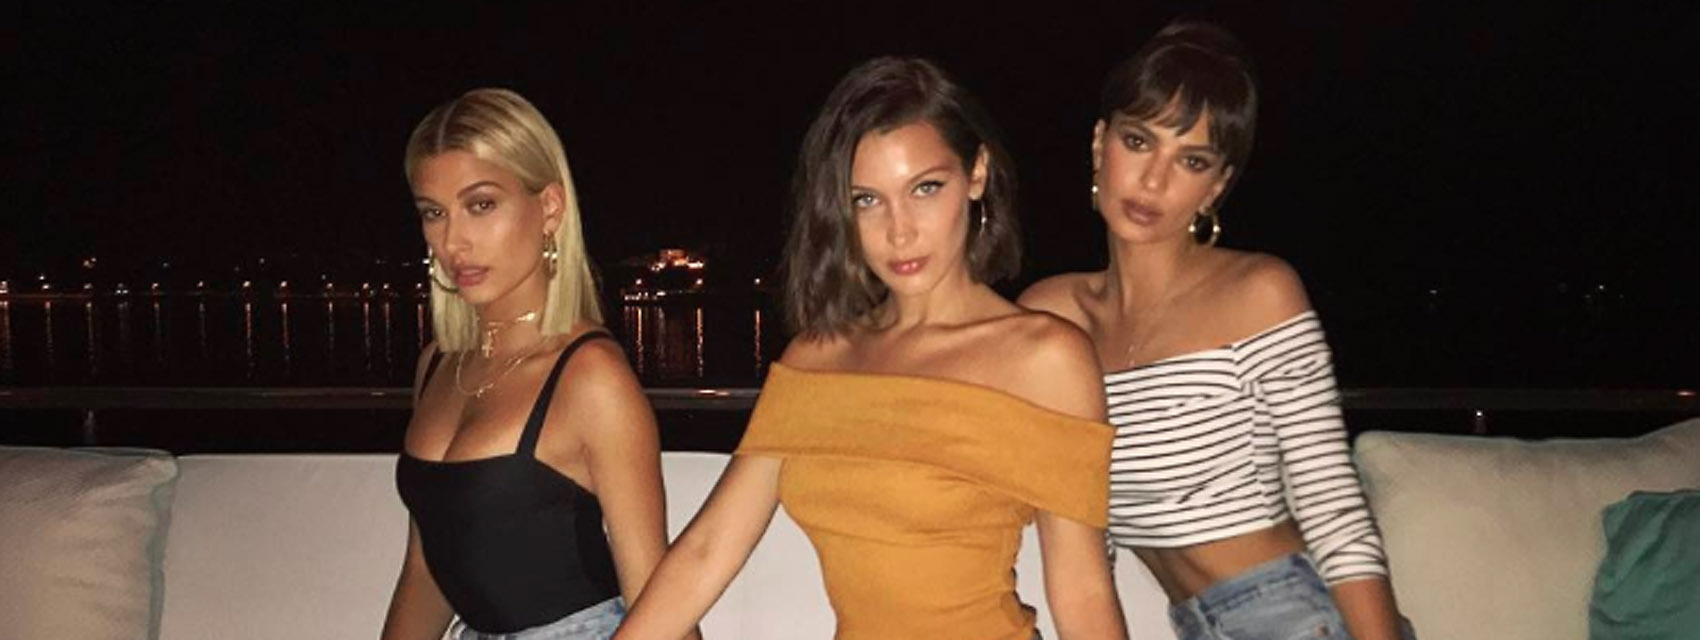 Bella hadid vacation france